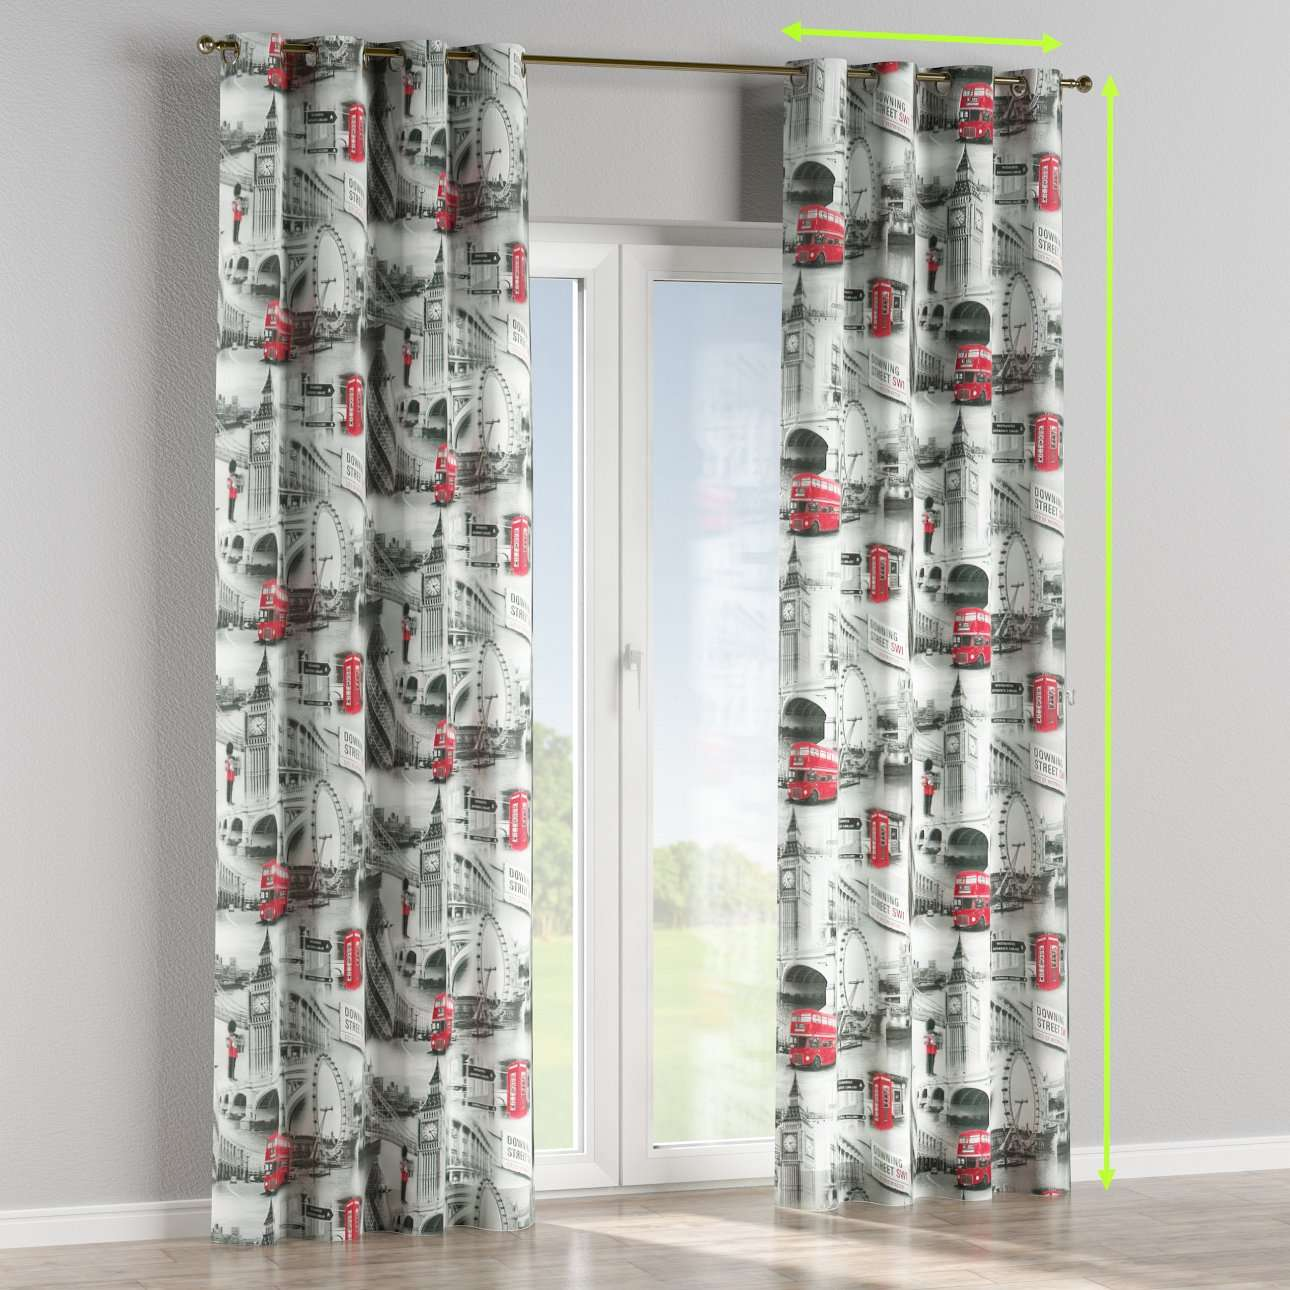 Eyelet lined curtains in collection Comic Book & Geo Prints, fabric: 111-04